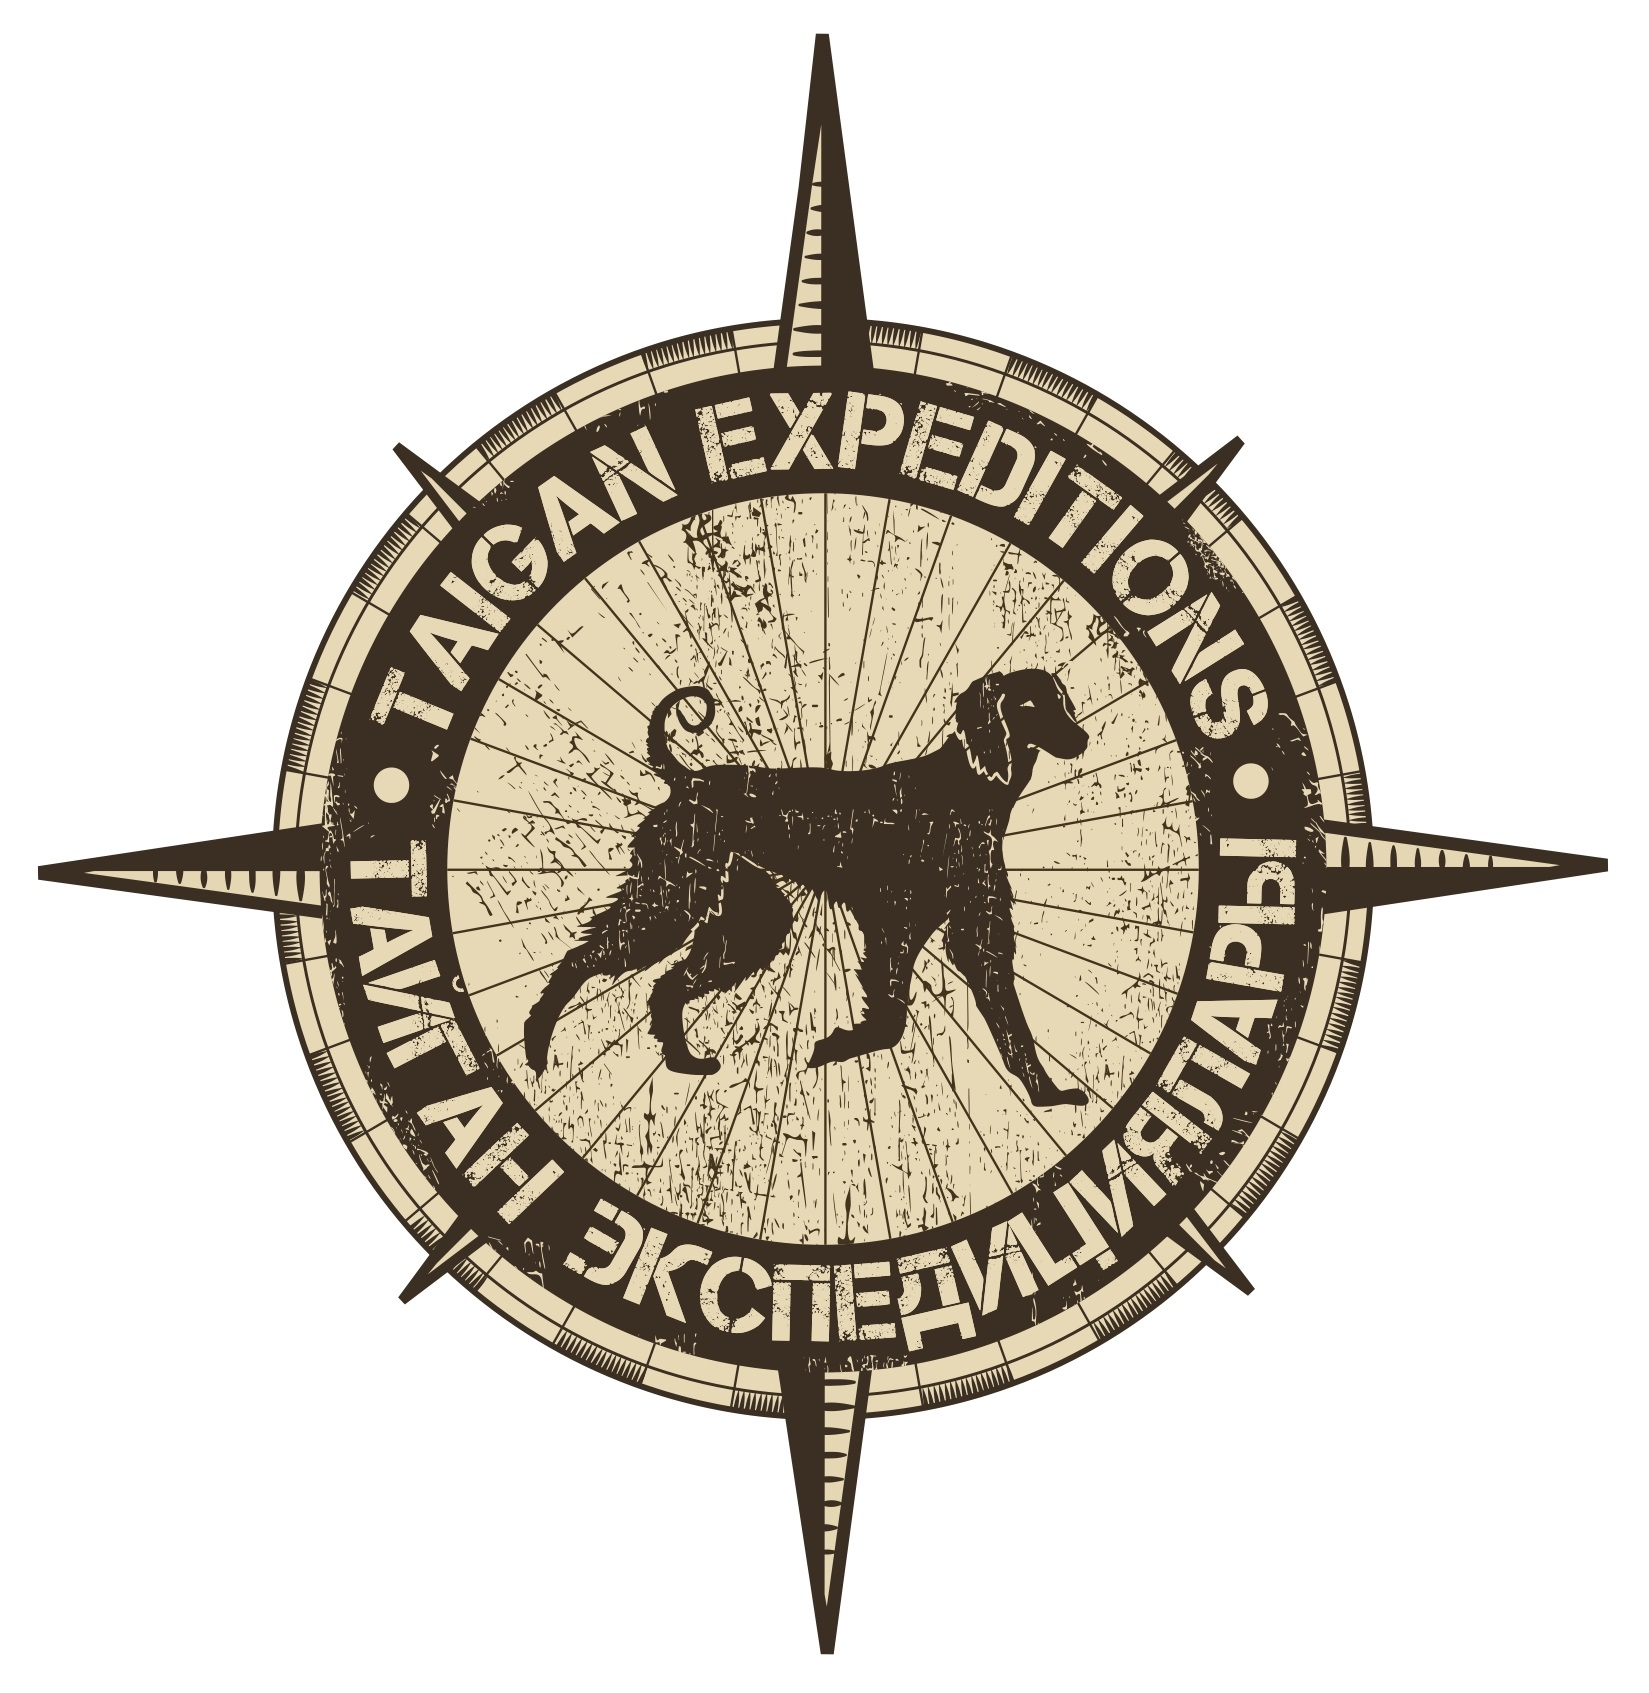 Taigan Expeditions